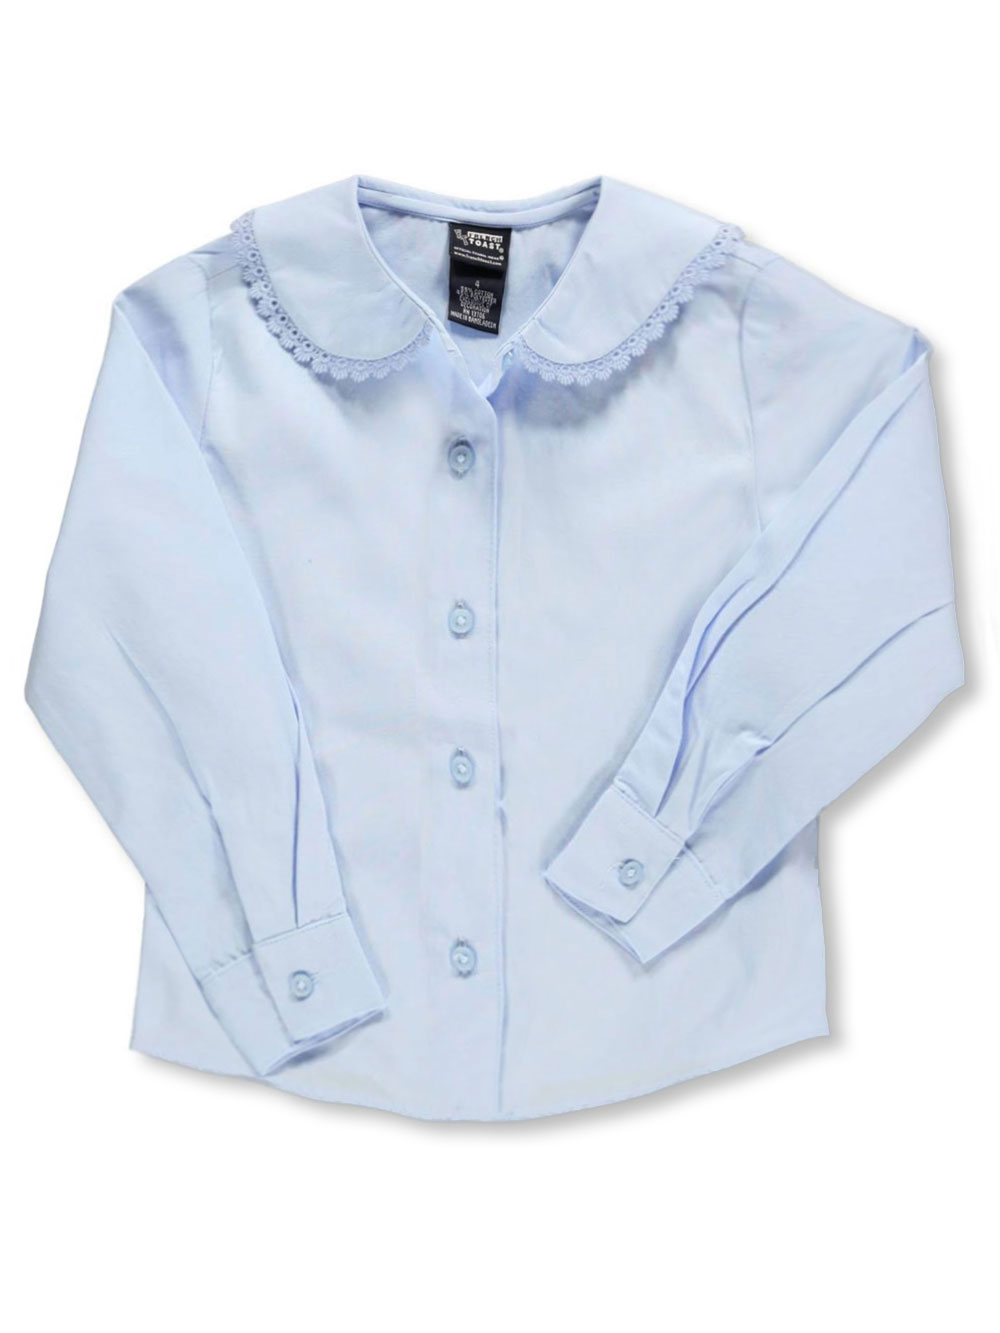 Size 4 Blouses for Girls